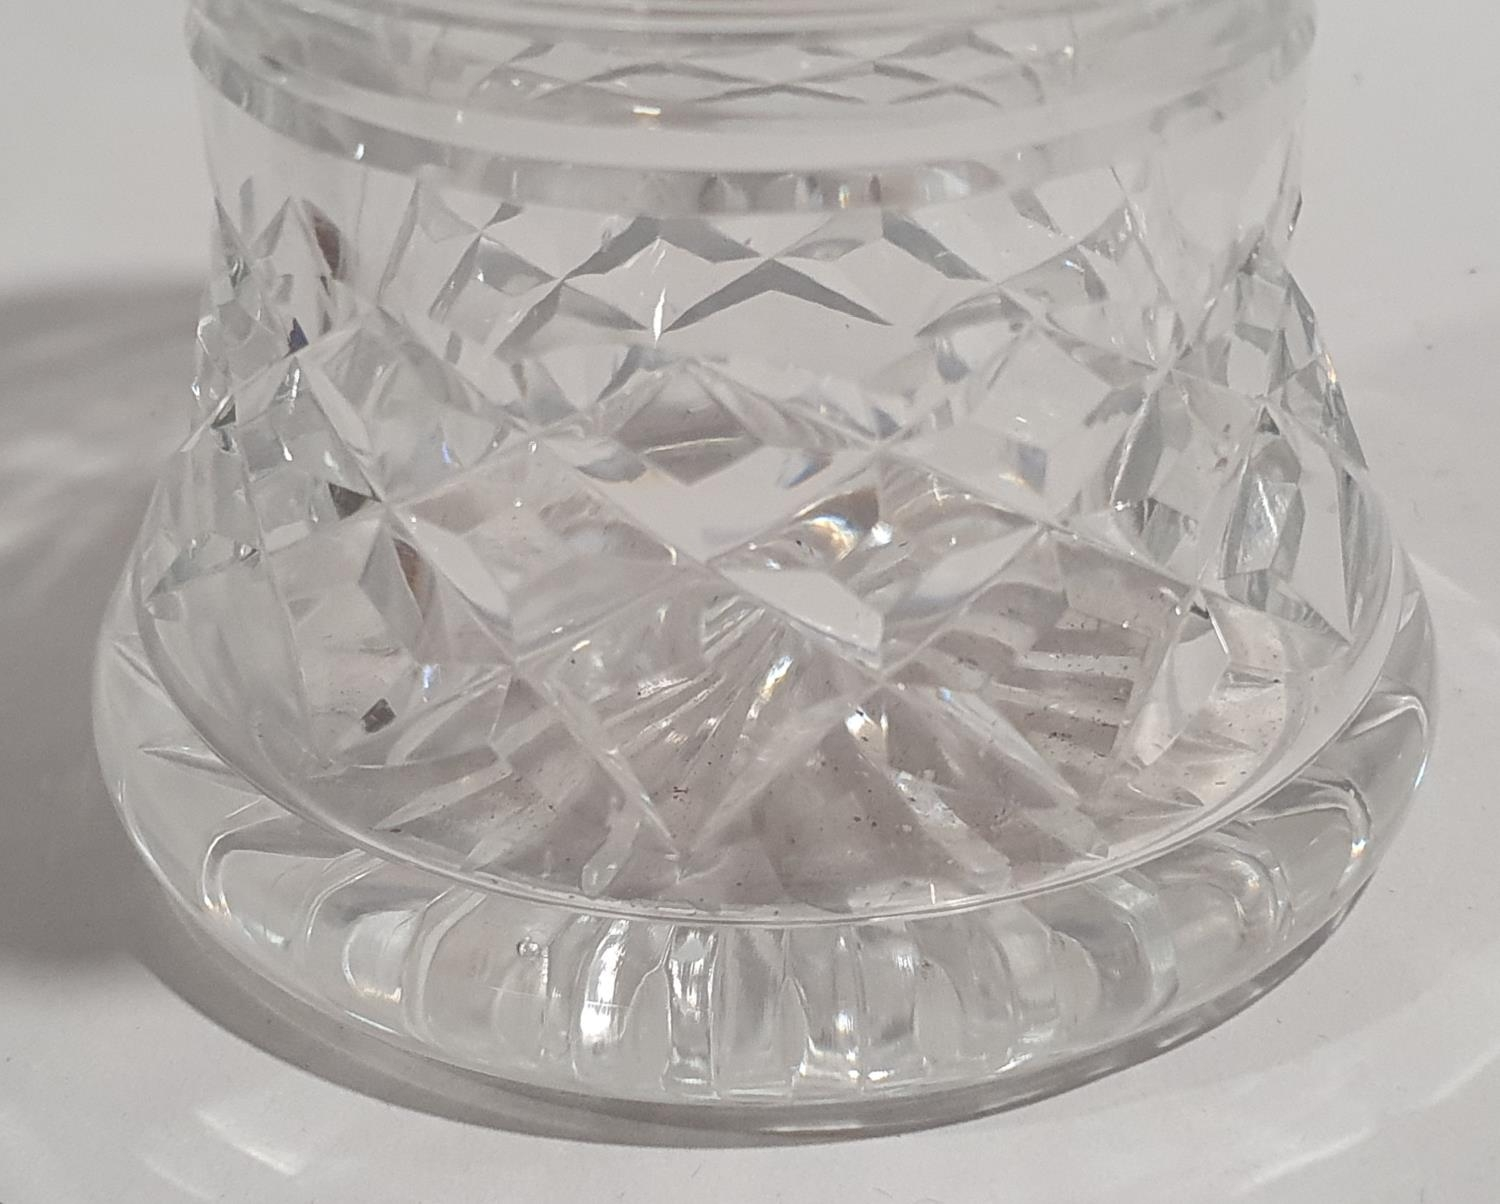 Collection of eight small silver spoons together with a silver rimmed crystal glass vase. - Image 8 of 8